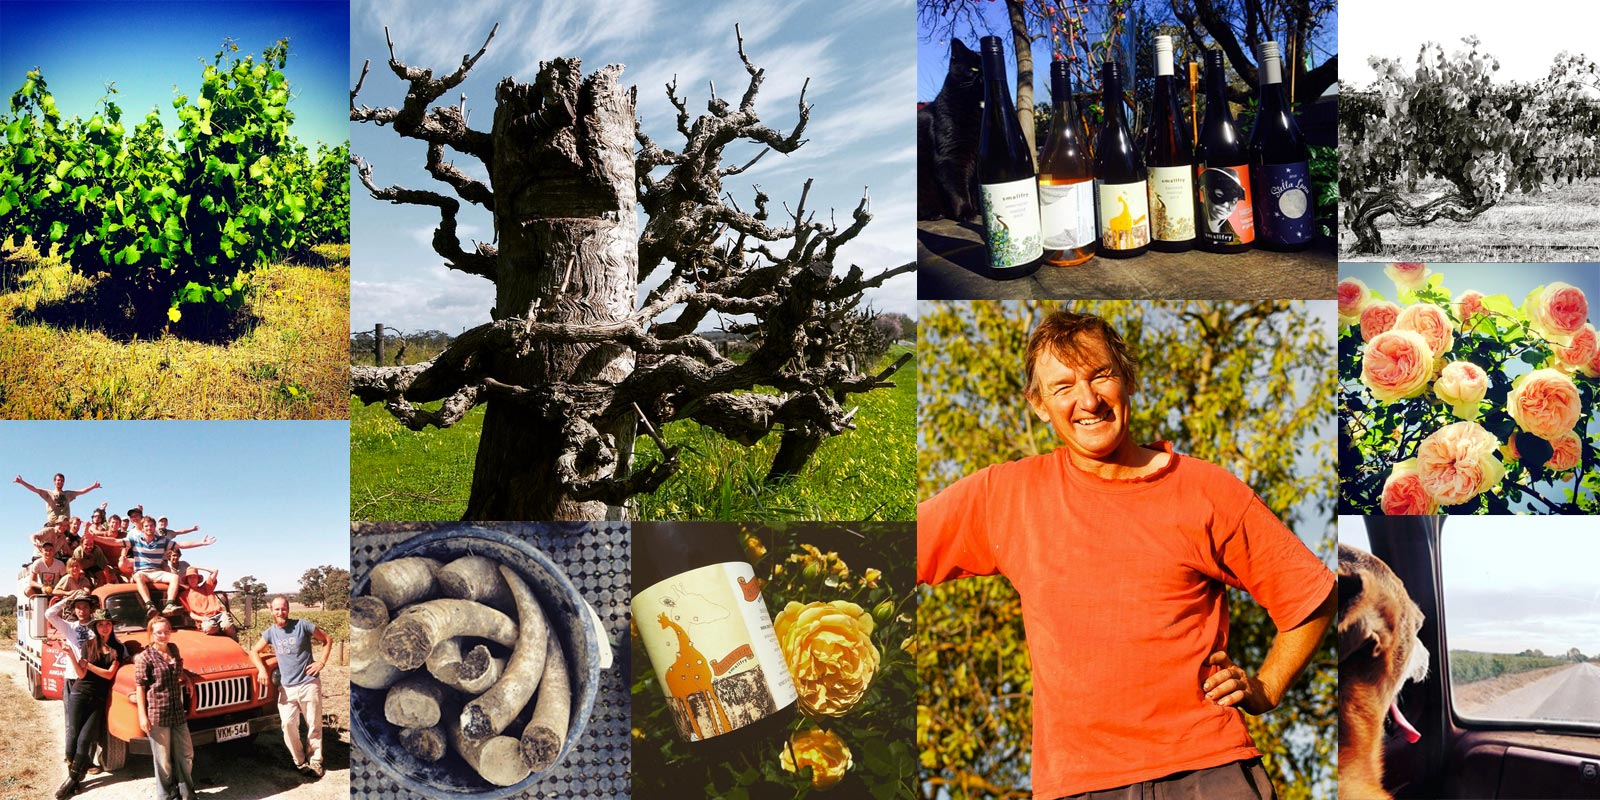 smallfry wines - handcrafted organic wines from the Barossa